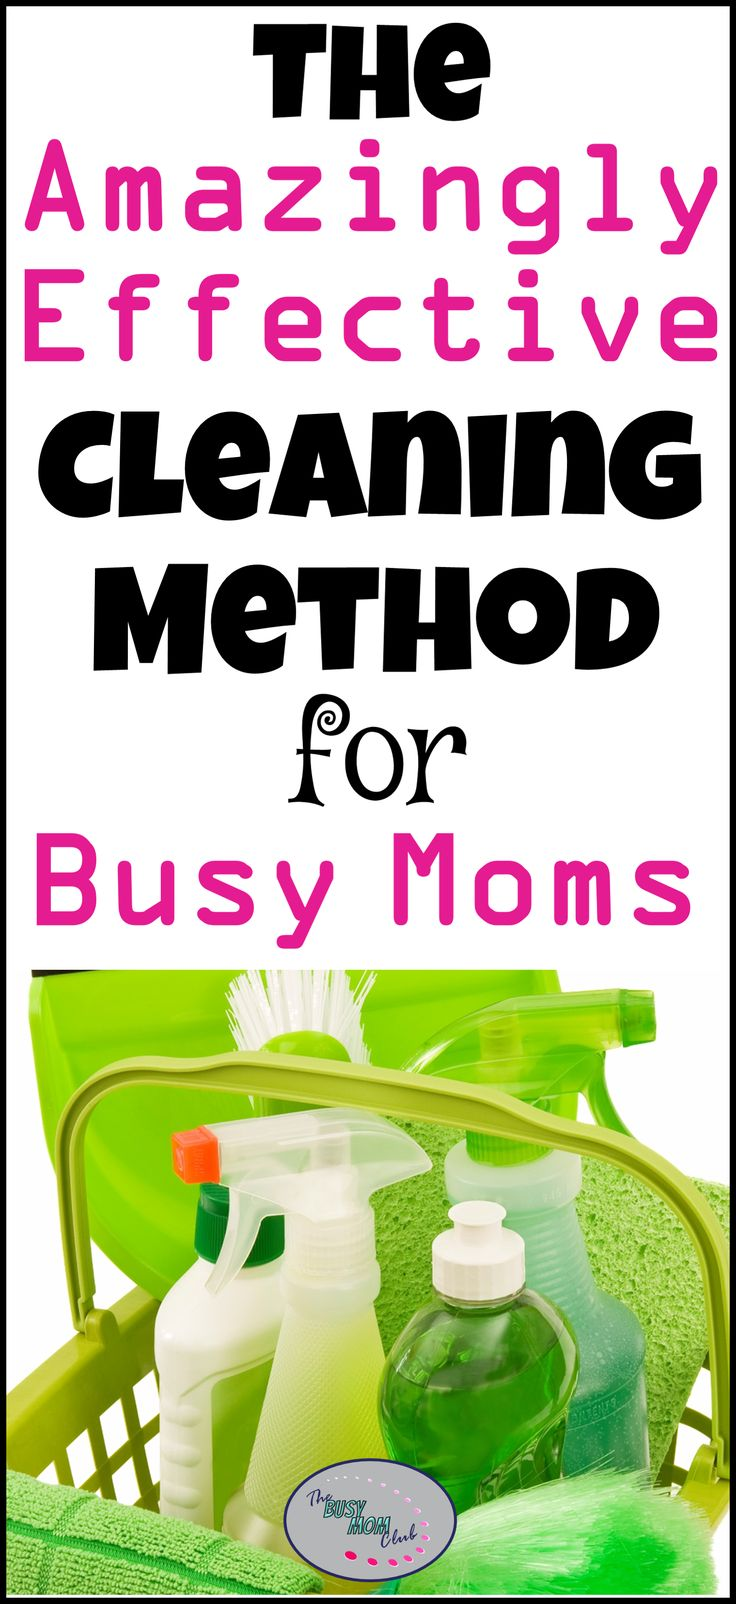 Cleaning can be overwhelming.  Make cleaning manageable by using the Burst Cleaning Method and get your house clean fast! #cleaningtips #cleanhouse #thebusymomclub #busymomtips via @suryachronister